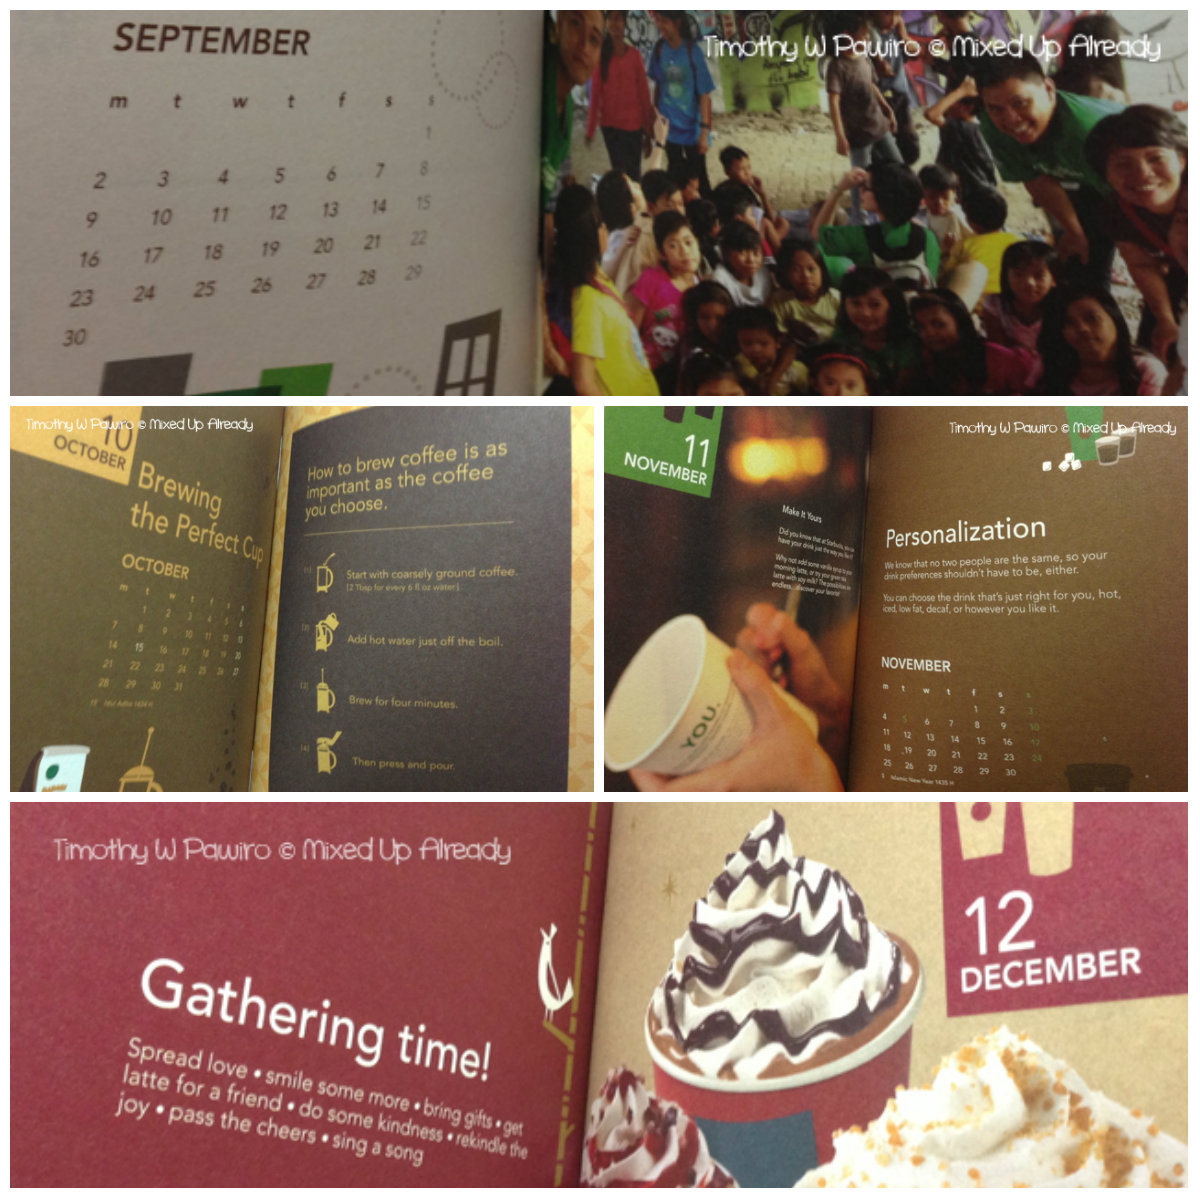 Starbucks Indonesia Planner 2013 (Sep - Dec)